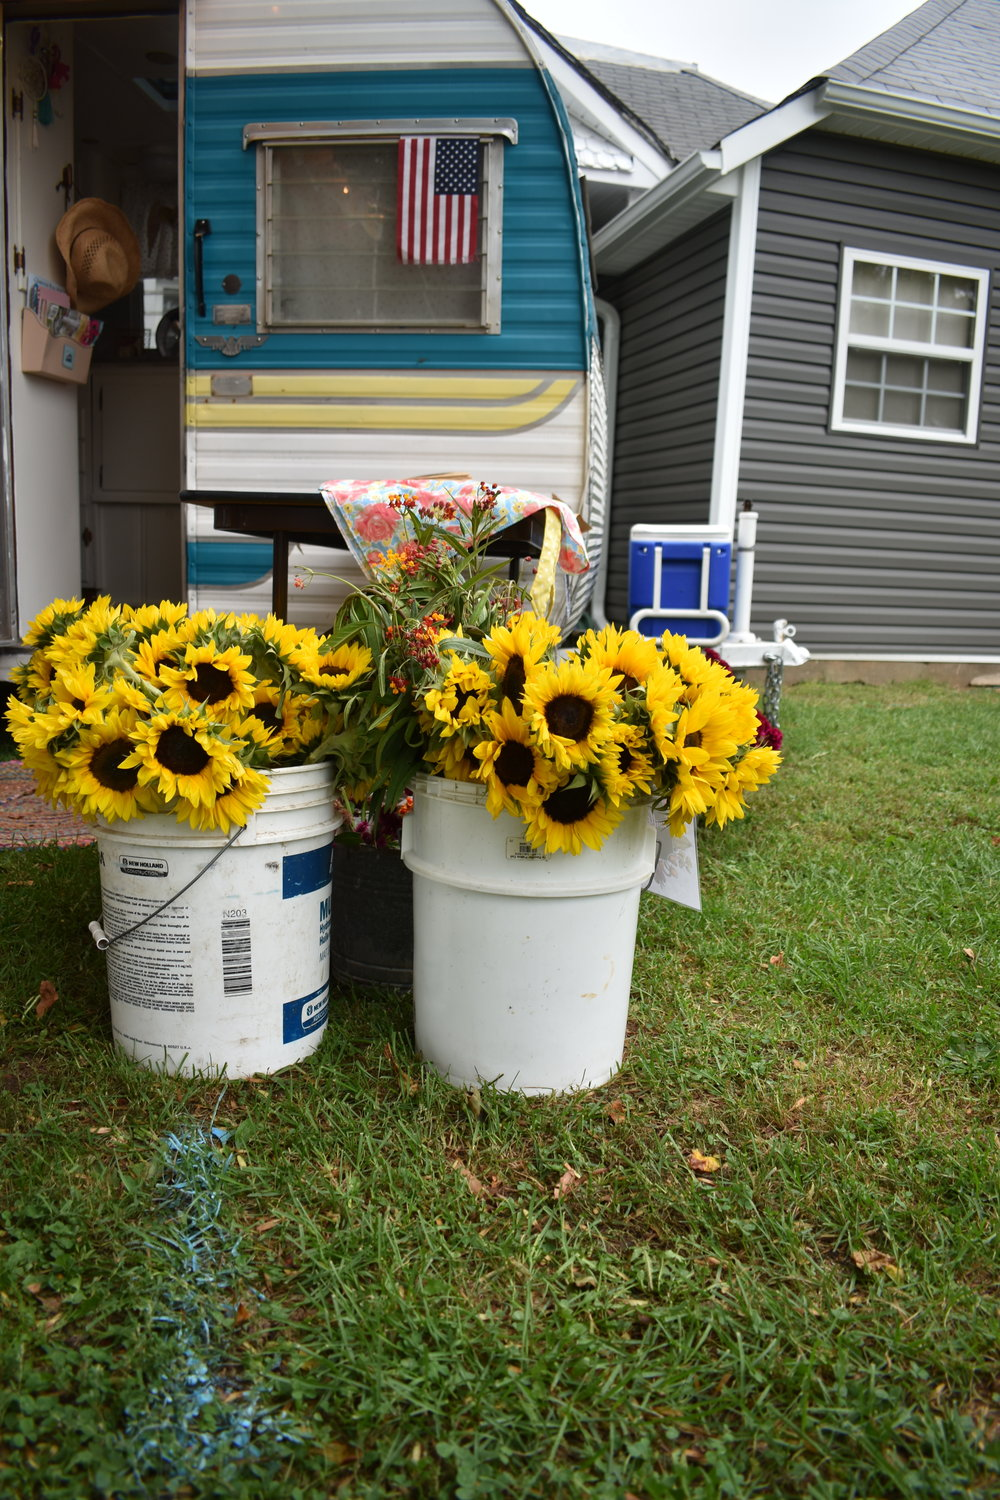 Sunflowers for Sale at Sugar's Pies and Sundries